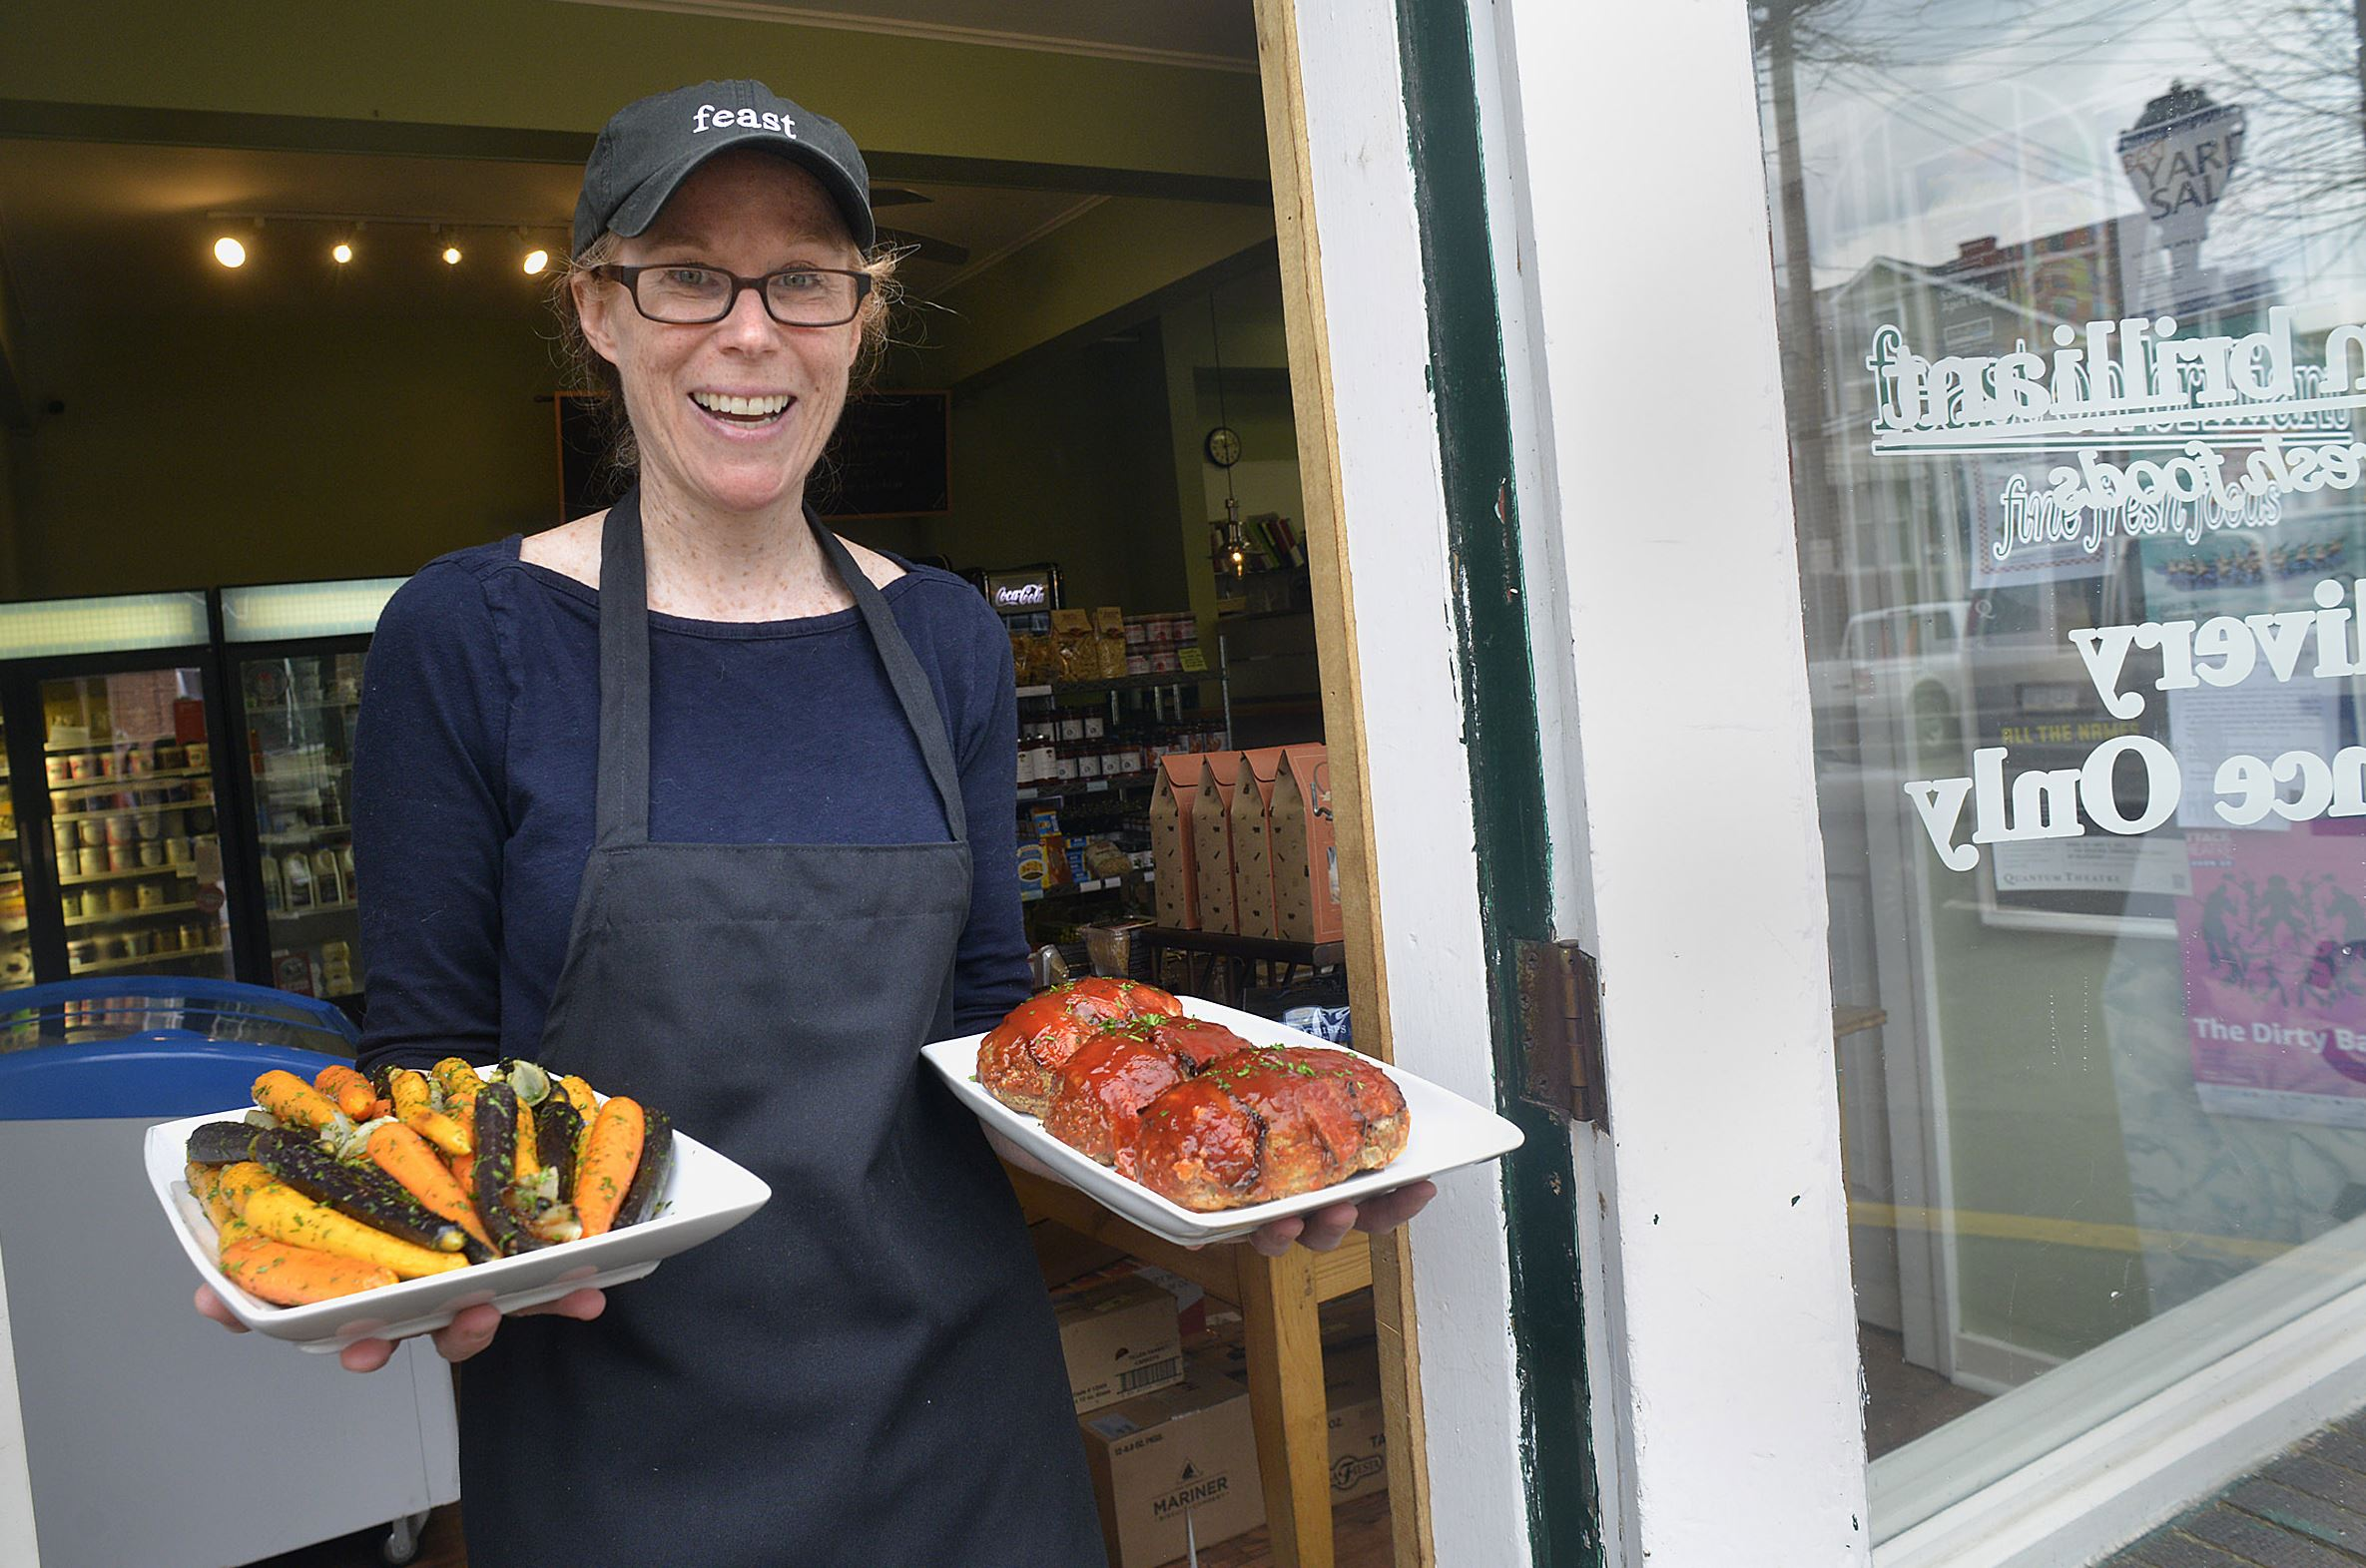 20150409lrbrilliantfood09-7 Patty Danforth , the propretor of Feast on Brilliant in Aspinwall, poses in the doorway with two of the prepared items sold at the grocery, herbed carrots and meatloaf.